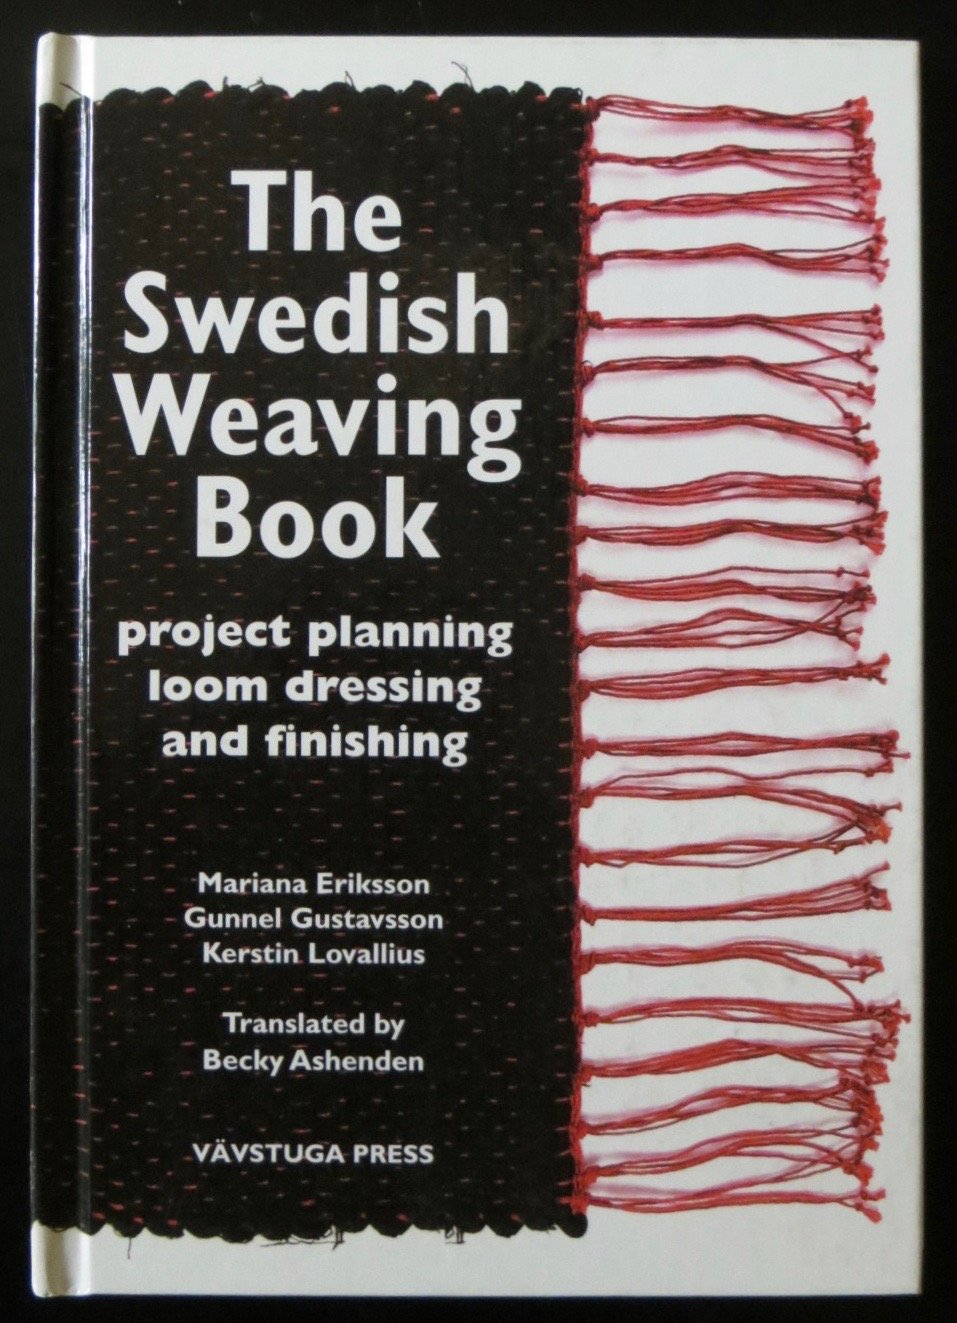 The Swedish Weaving Book Project Planning Loom Dressing and Finishing